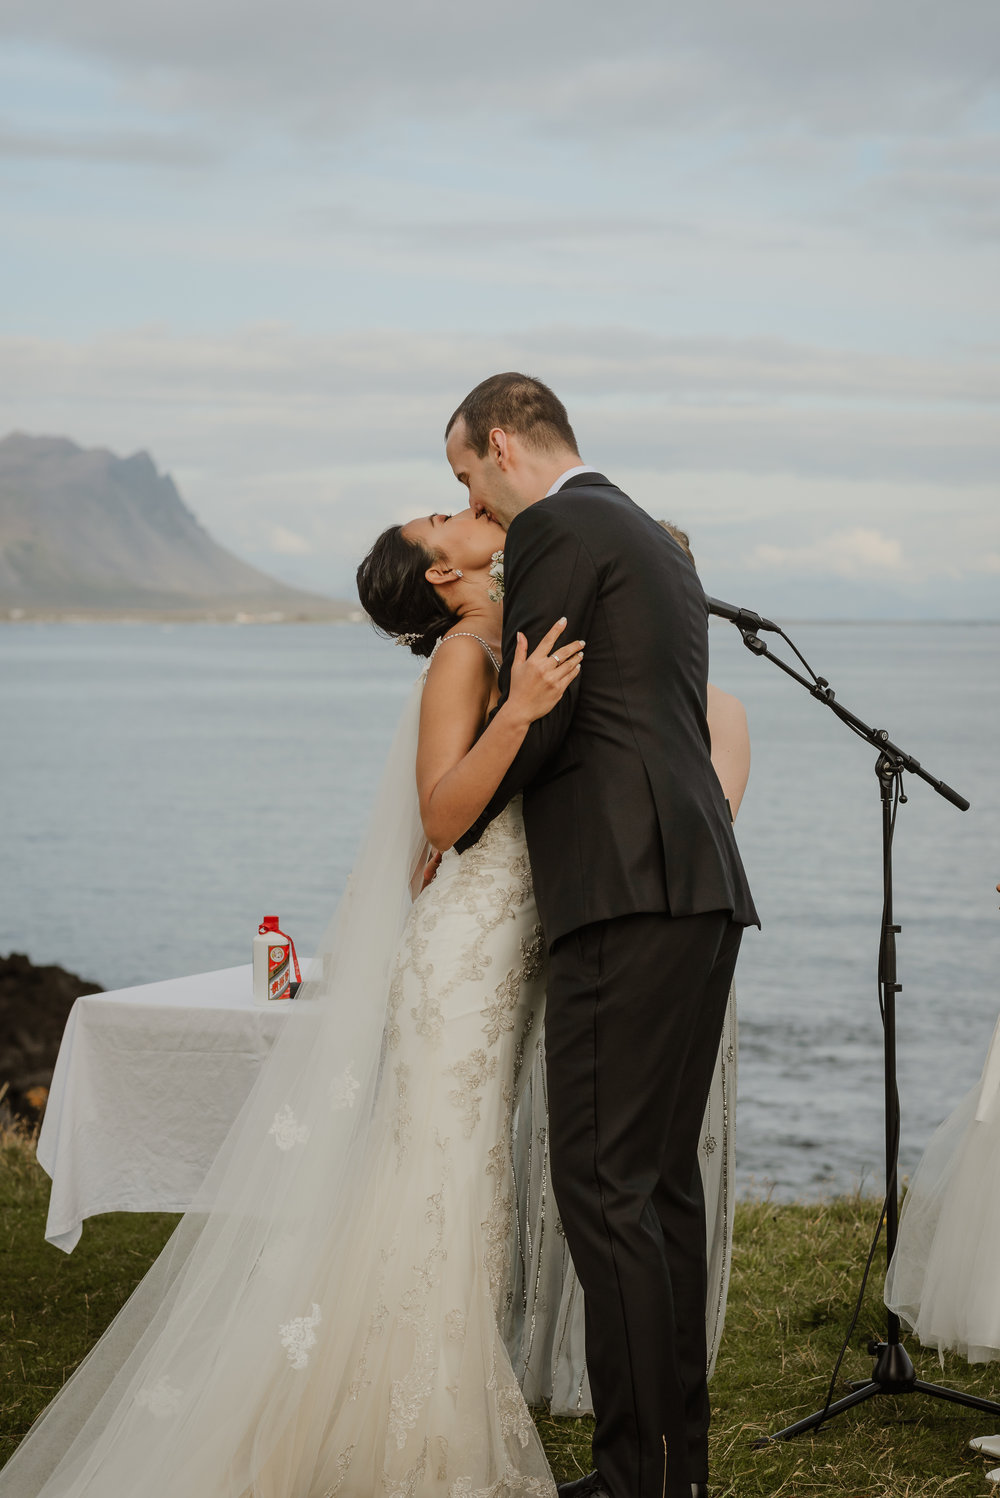 072-hotel-budir-iceland-destination-wedding-vivianchen-642.jpg